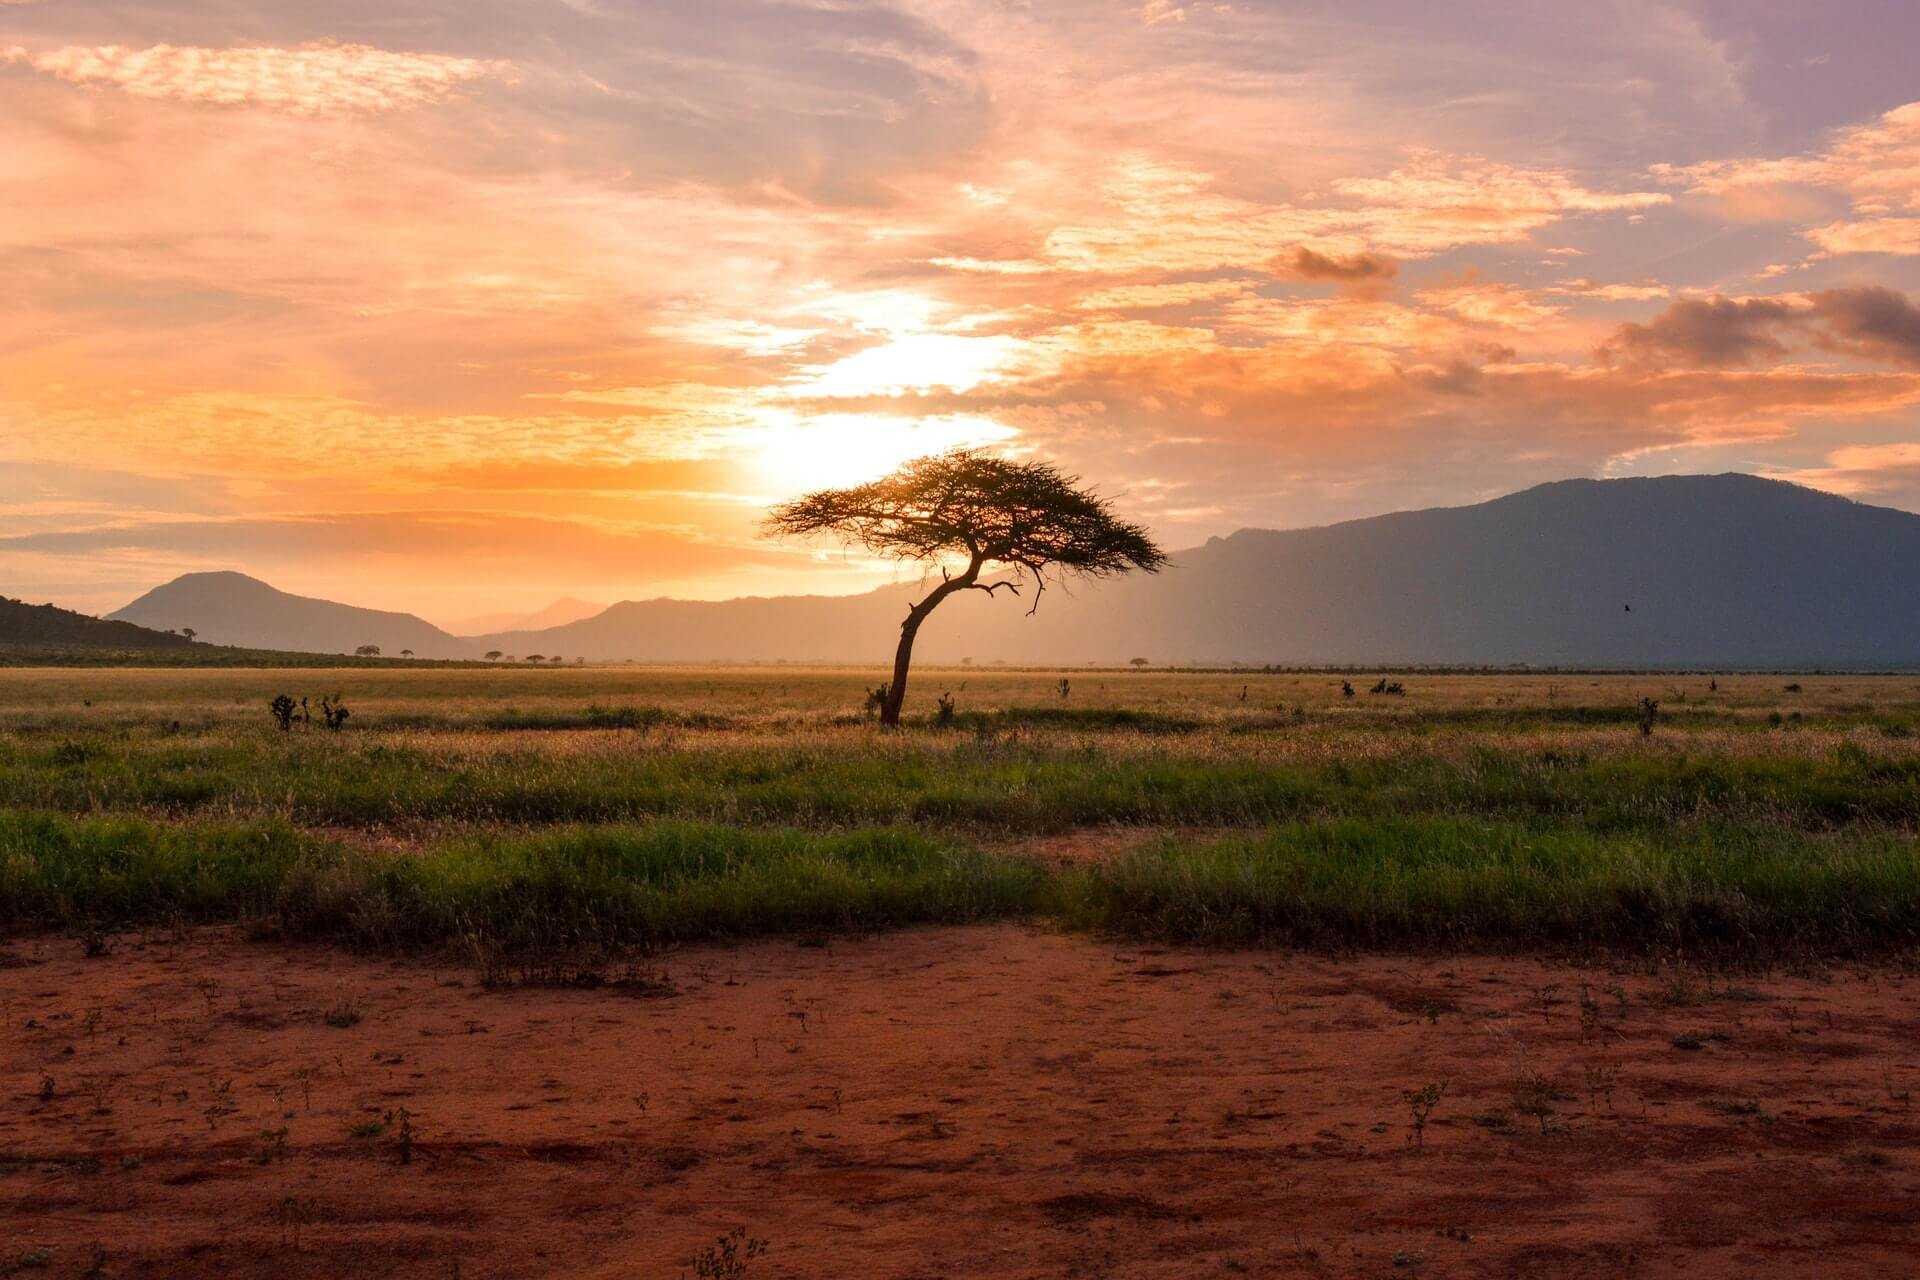 A lone tree photographed at sunset by a volunteer travelling Kenya